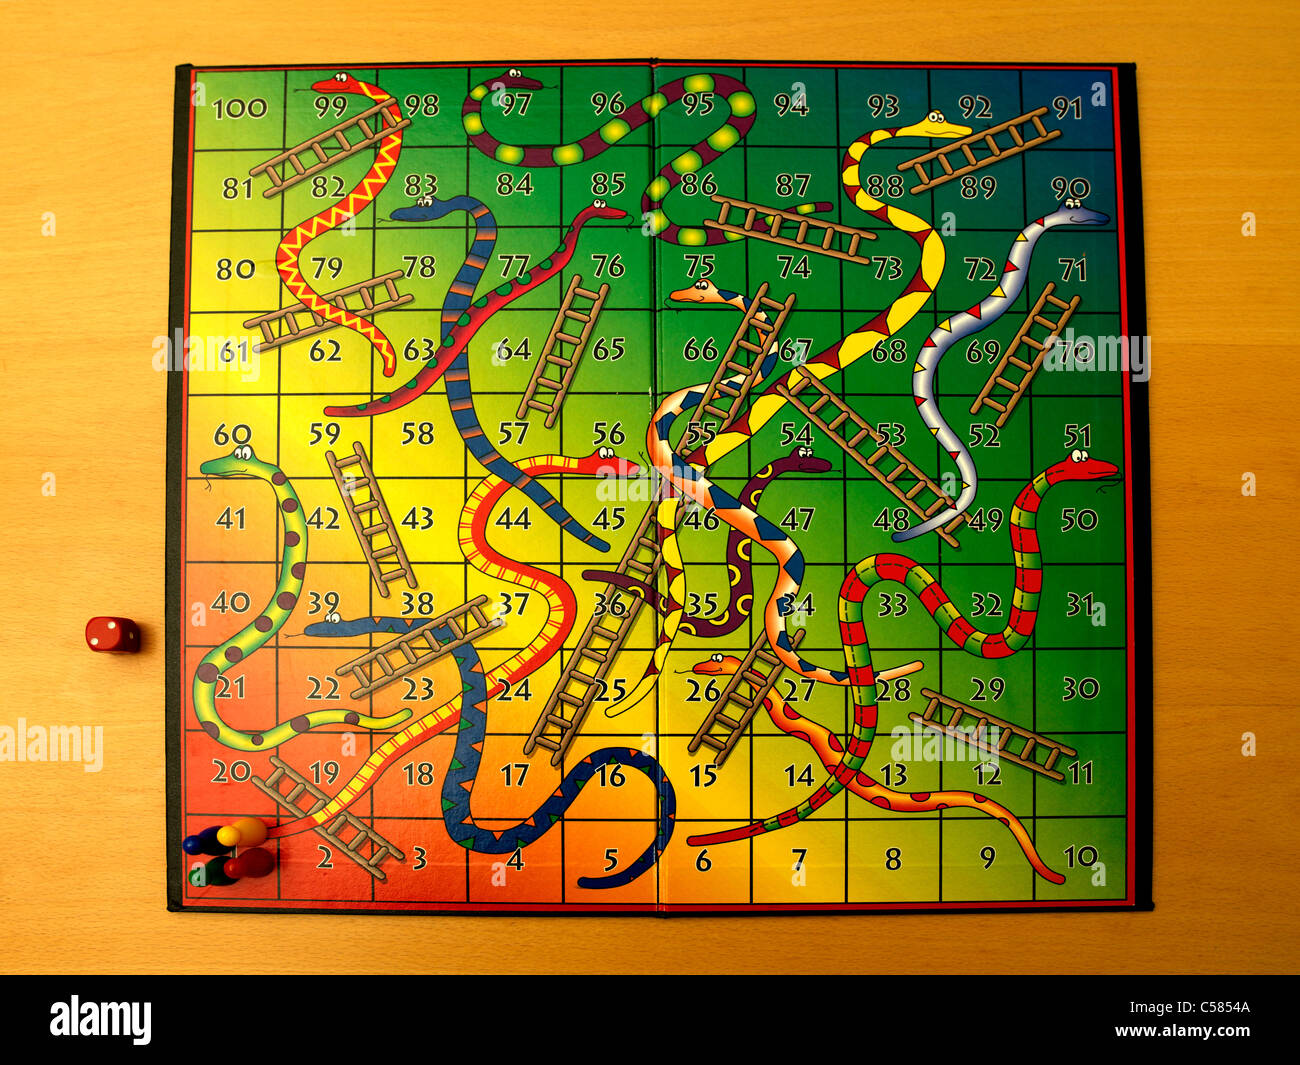 Snakes and Ladders Board Game Stock Photo: 37673674 - Alamy